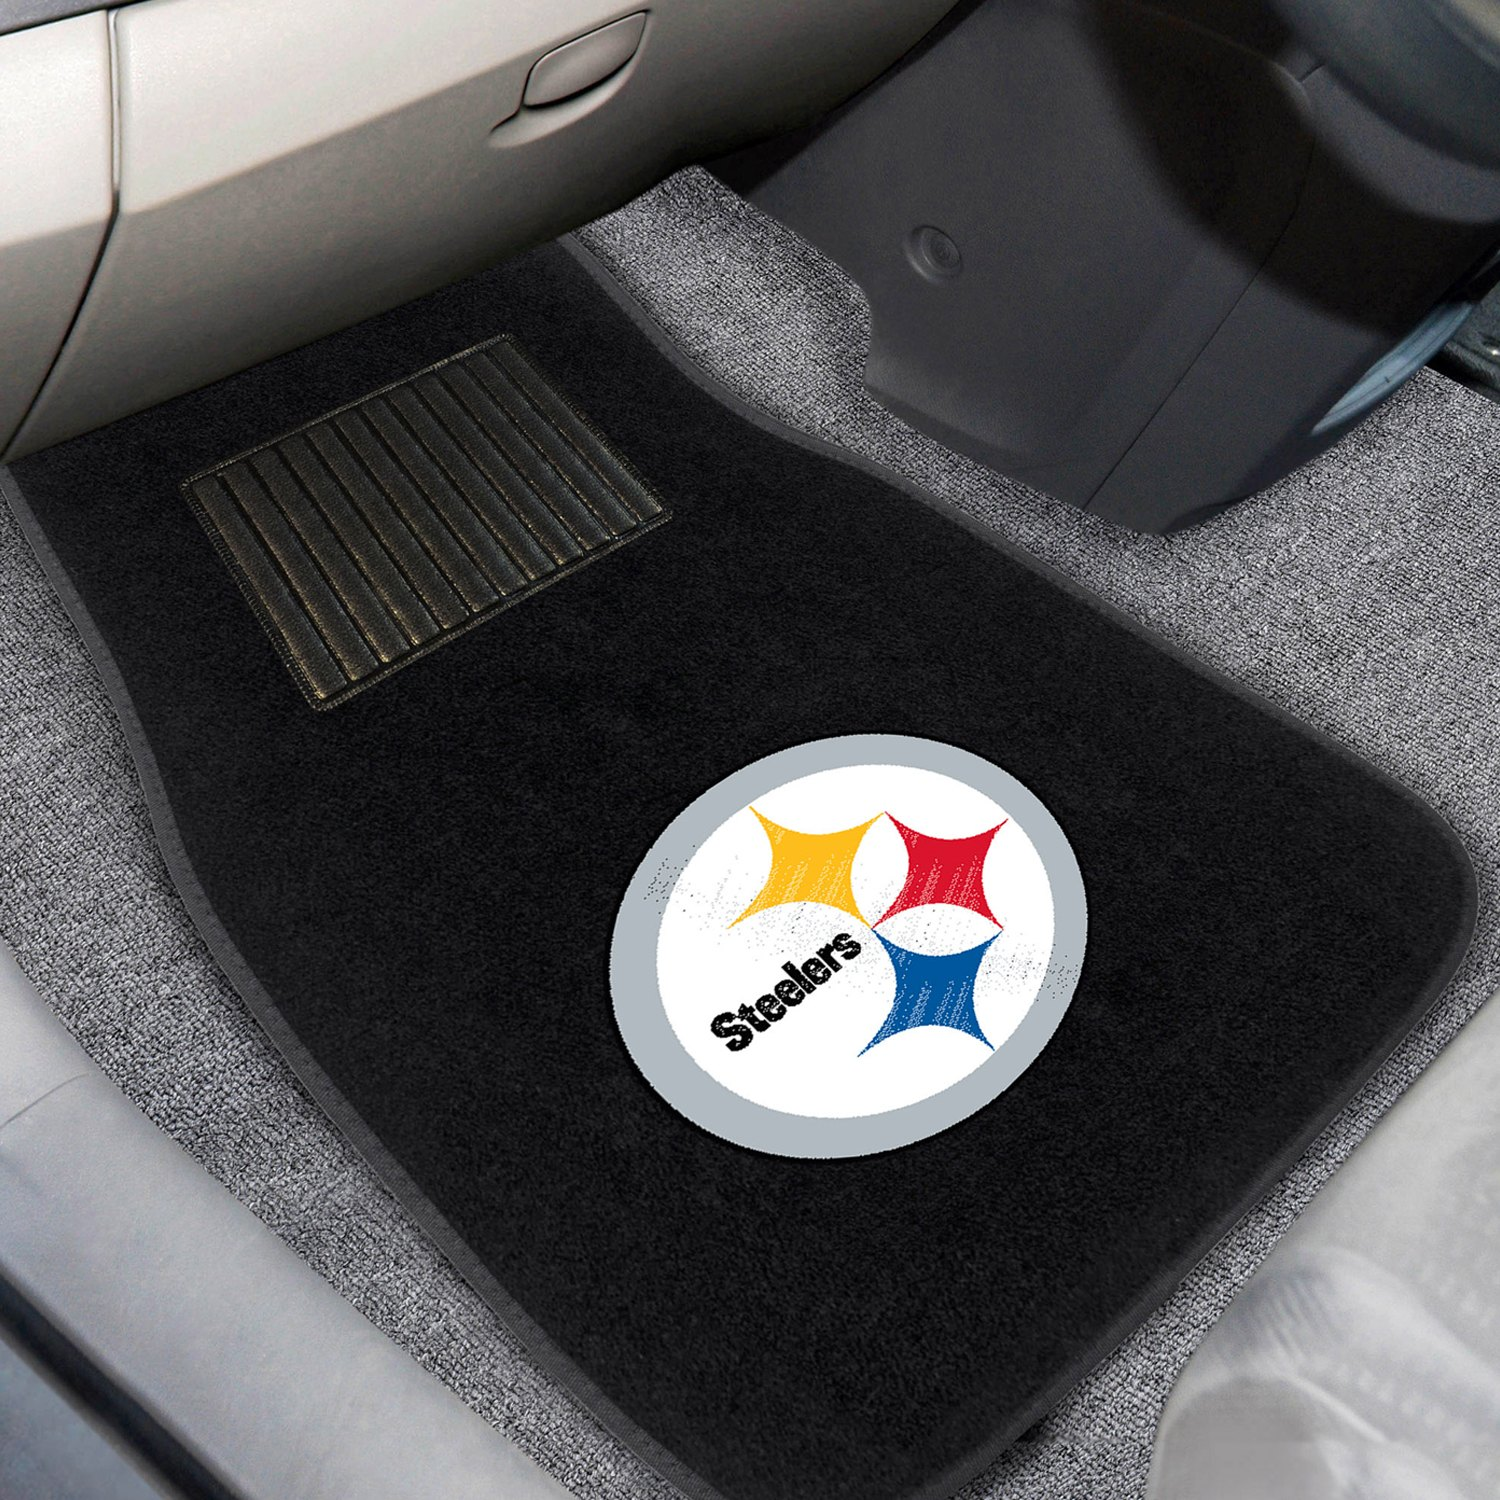 buy cheap FanMats® 10302 - Pittsburgh Steelers Logo on Embroidered Floor Mats for 2015 RAM 1500 TRUCK Ebay & Amazon